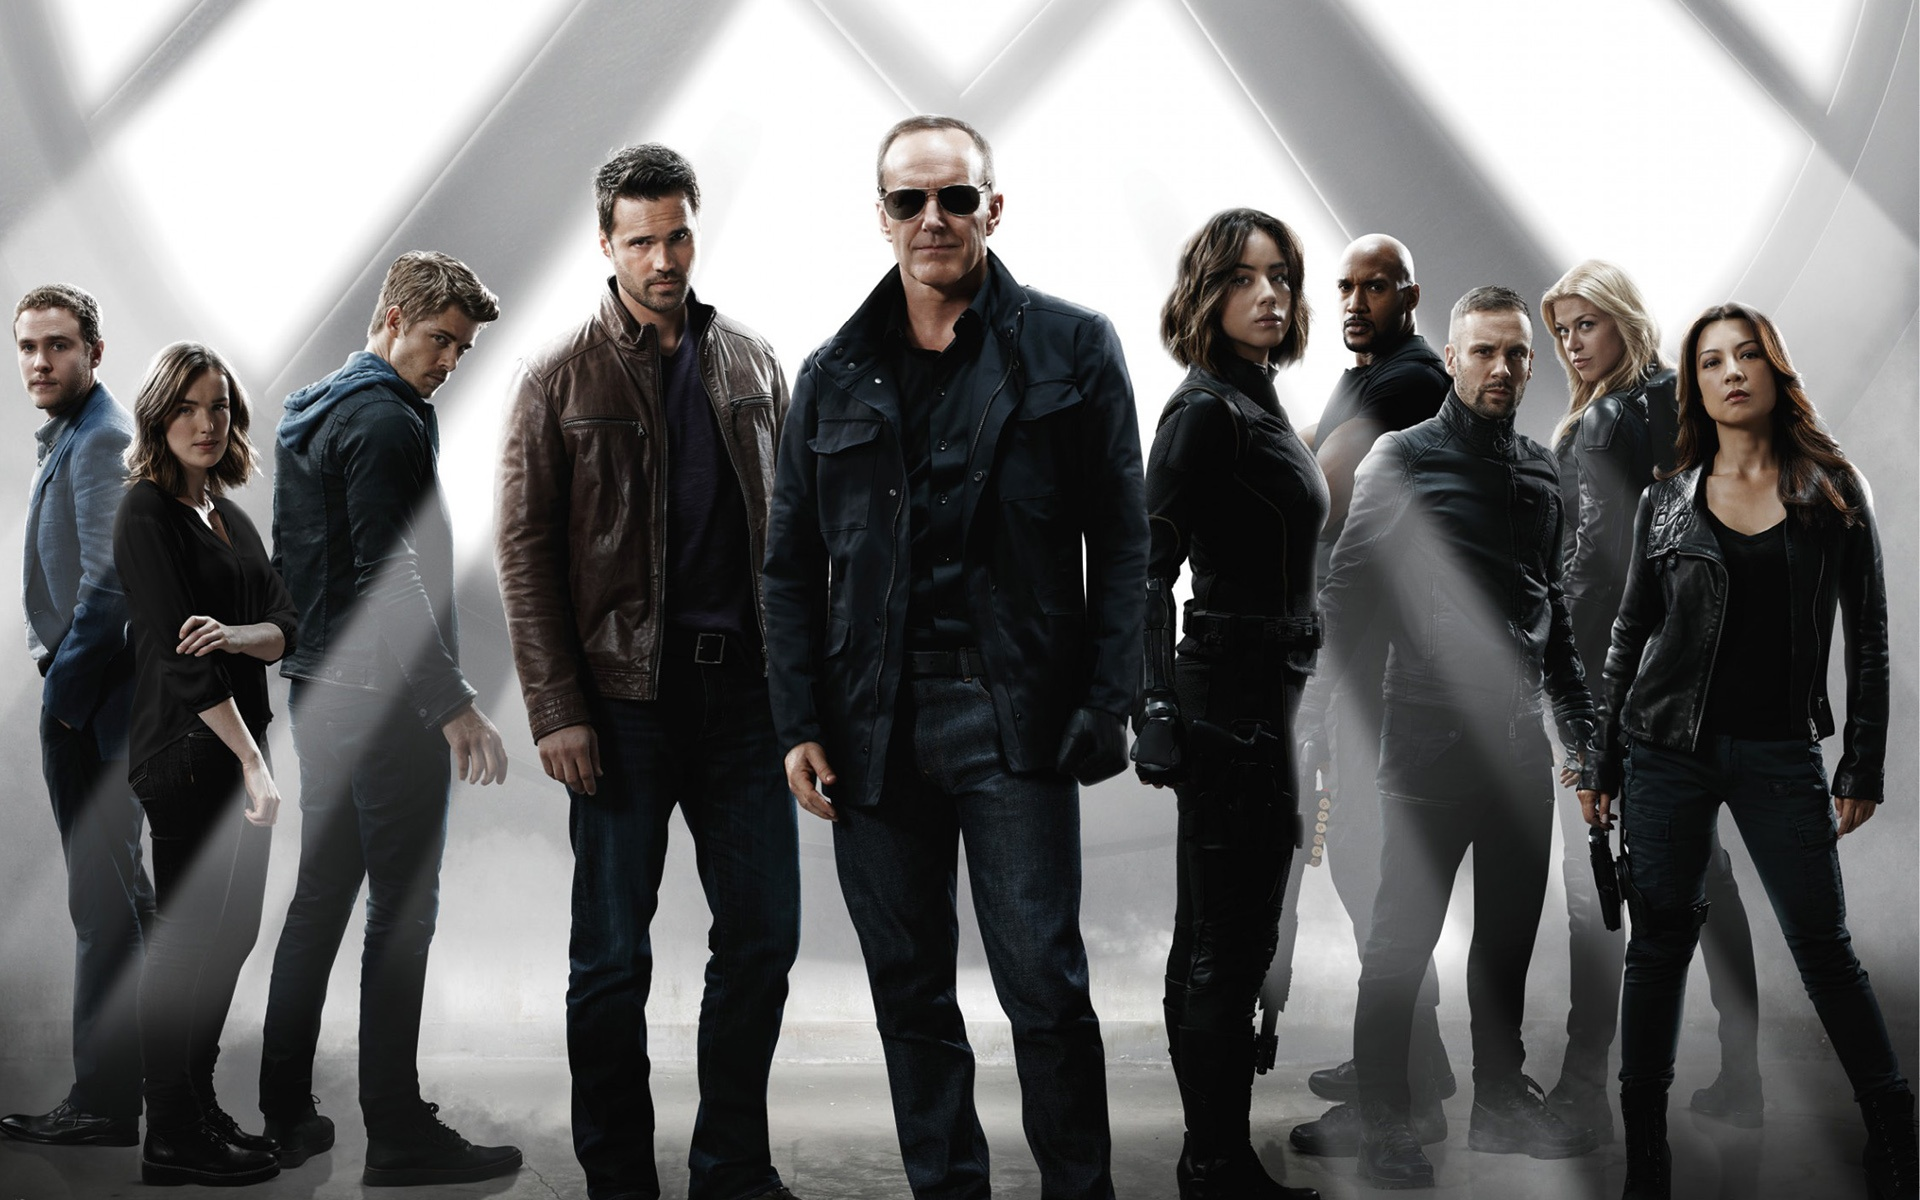 Agents of S.H.I.E.L.D. Renewed For Season 4